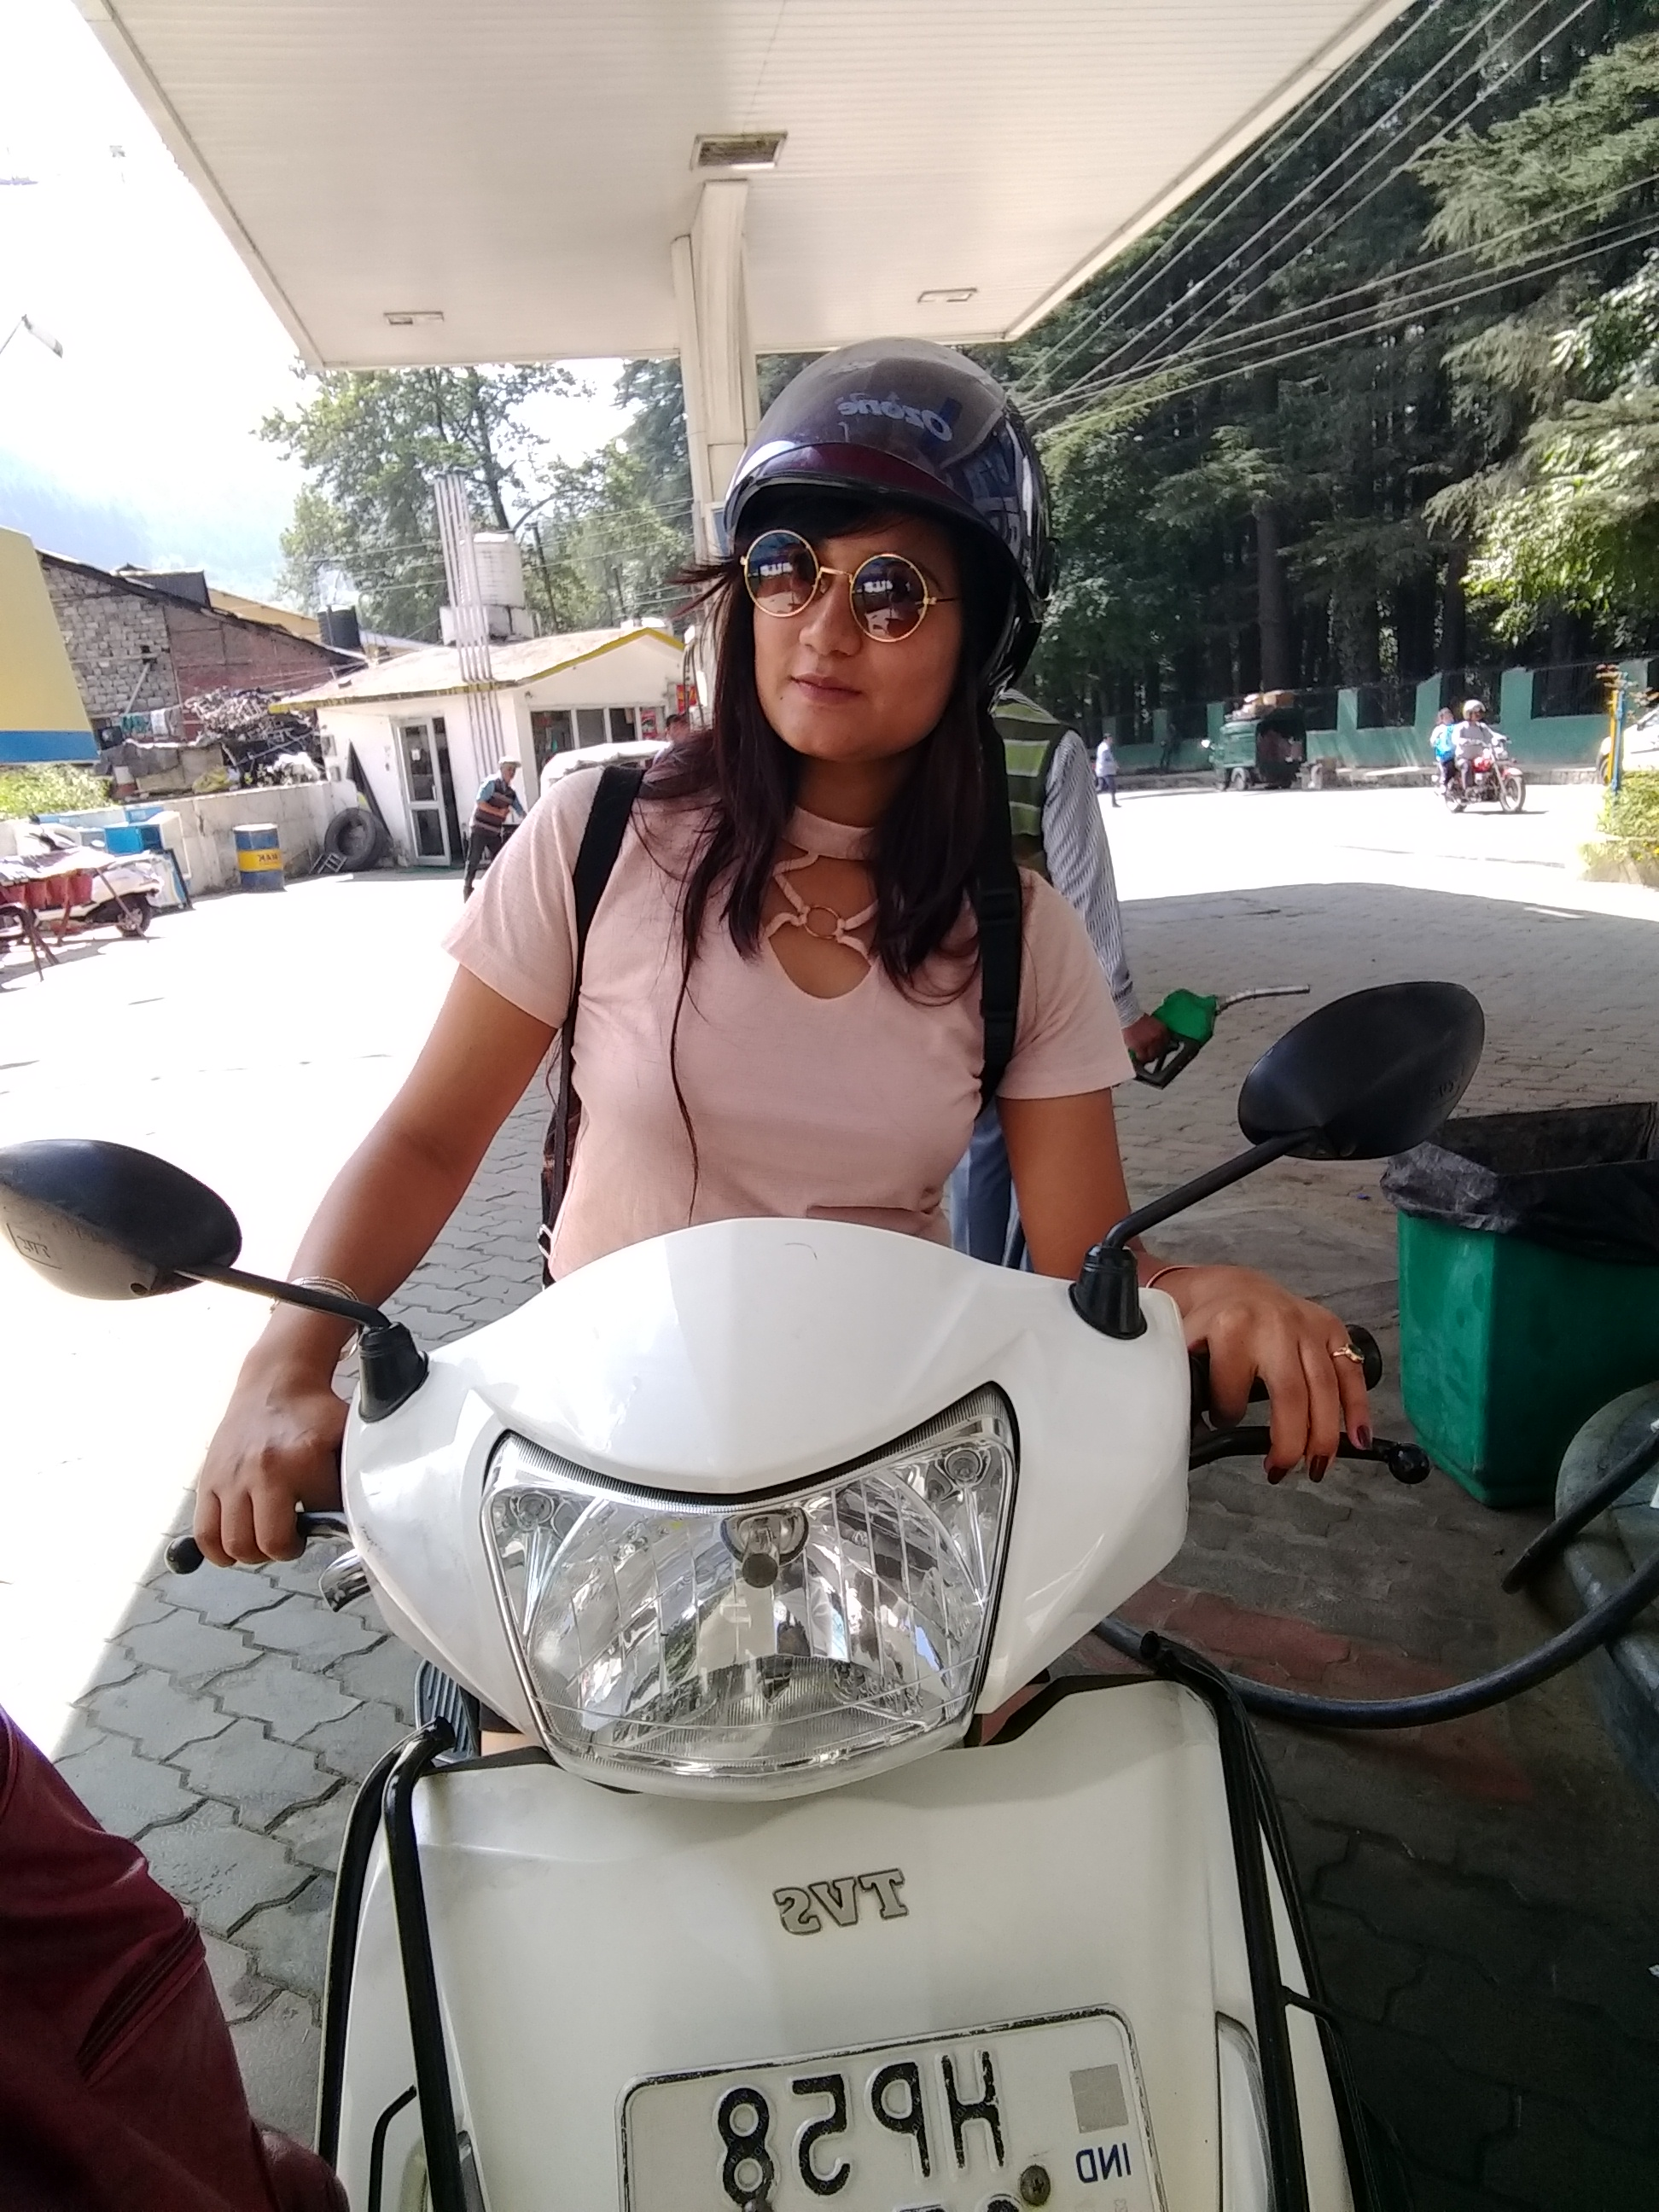 scooter-rentals-manali-34